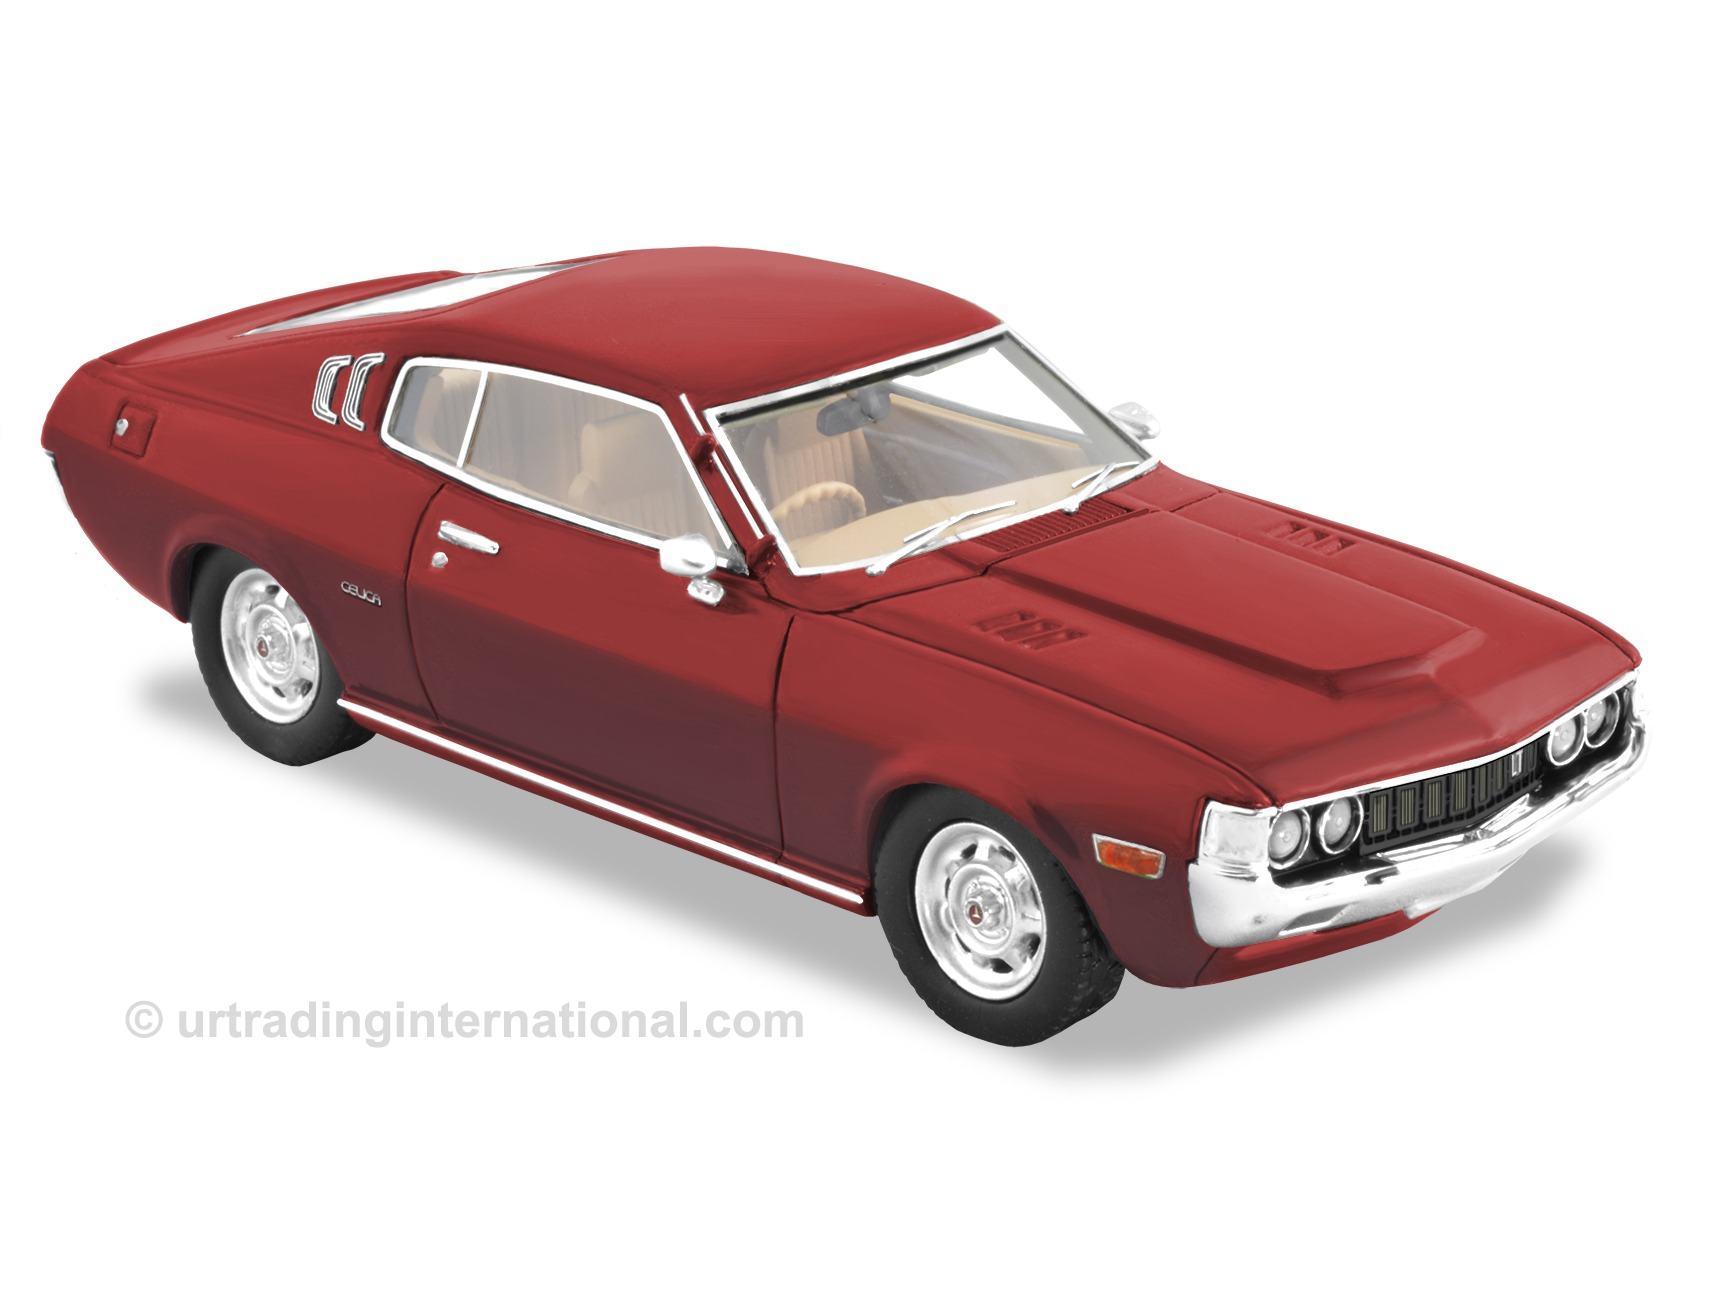 1977 Toyota Celica LT2000 – RED